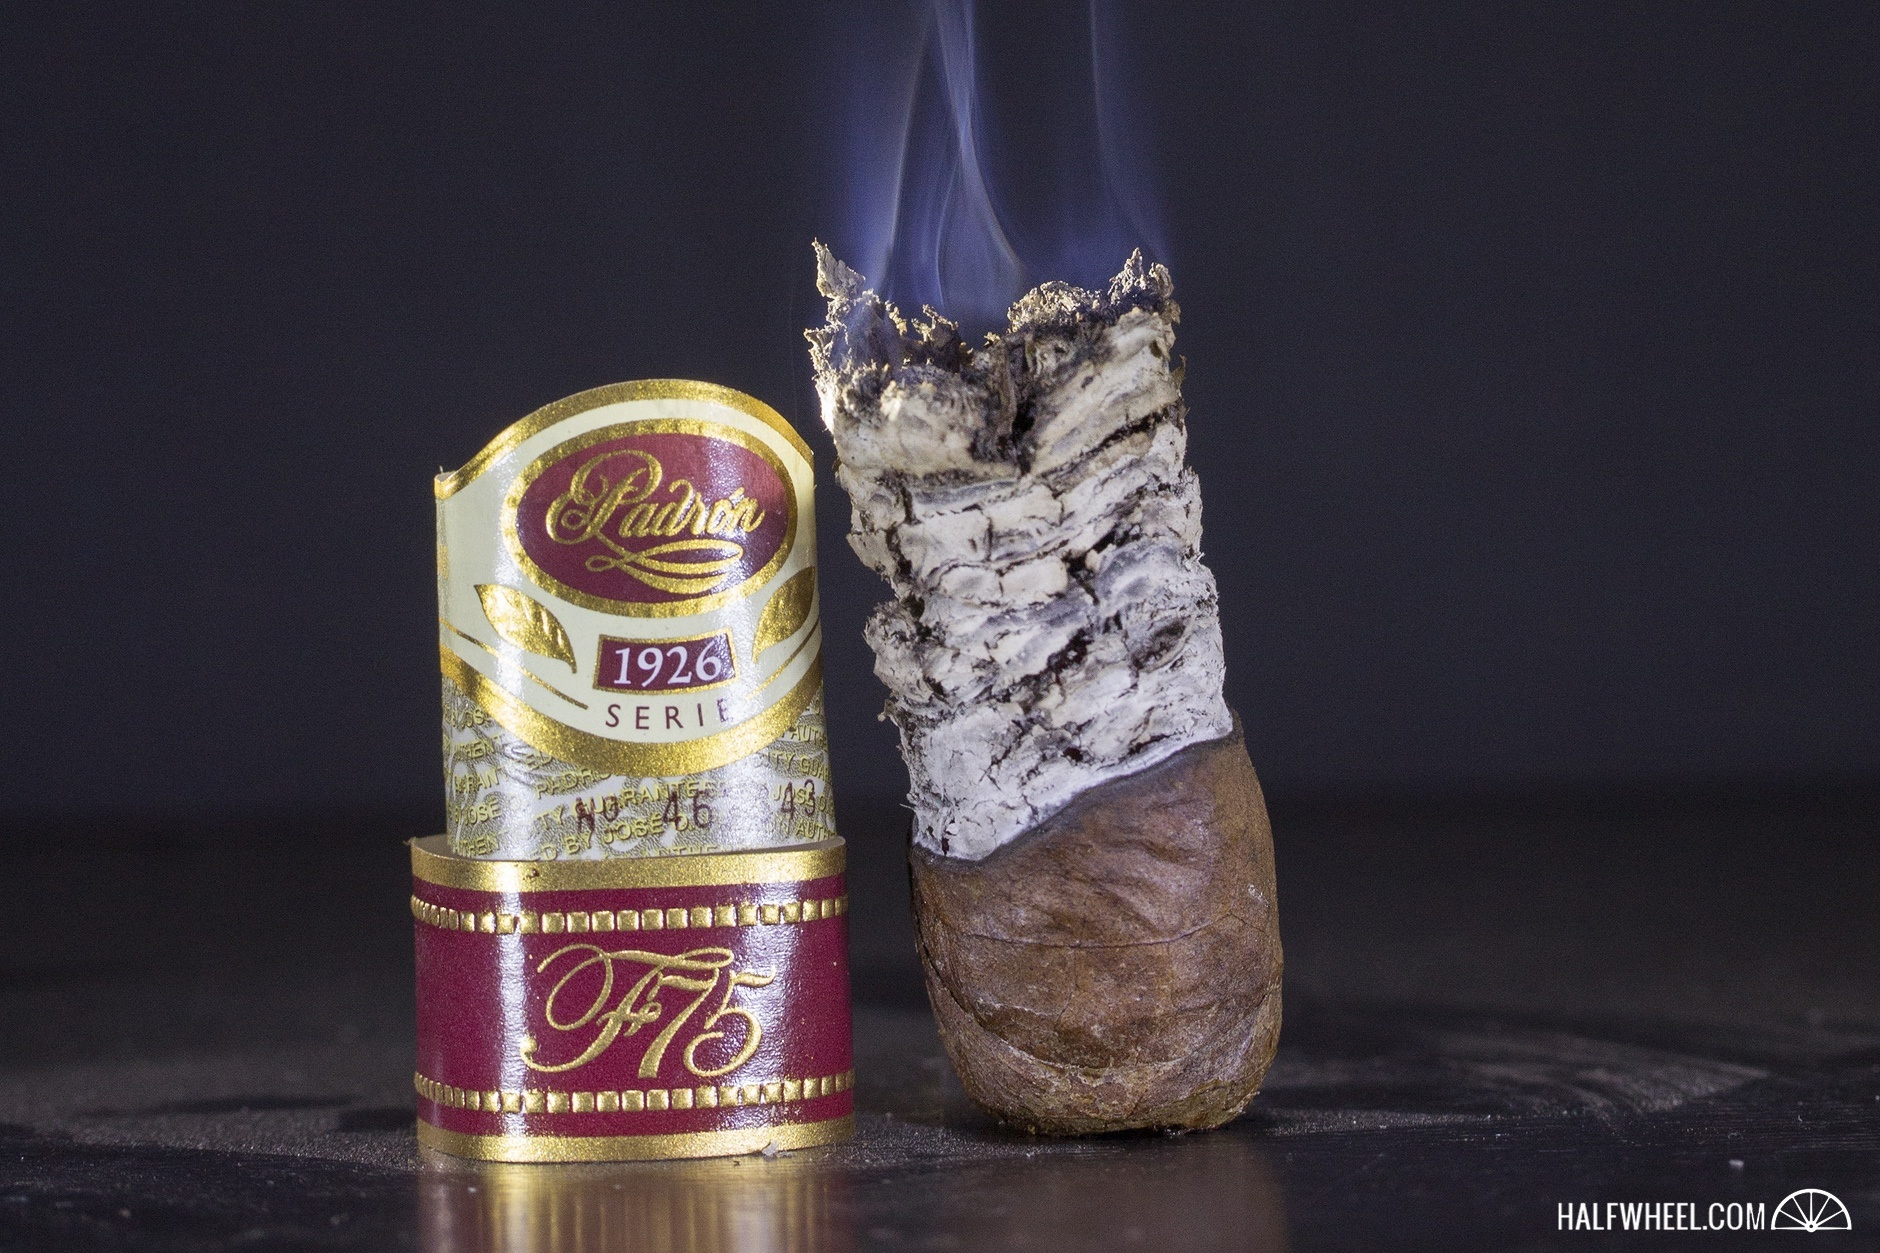 Famous 75th Padron 1926 Serie - Dec 2015-54